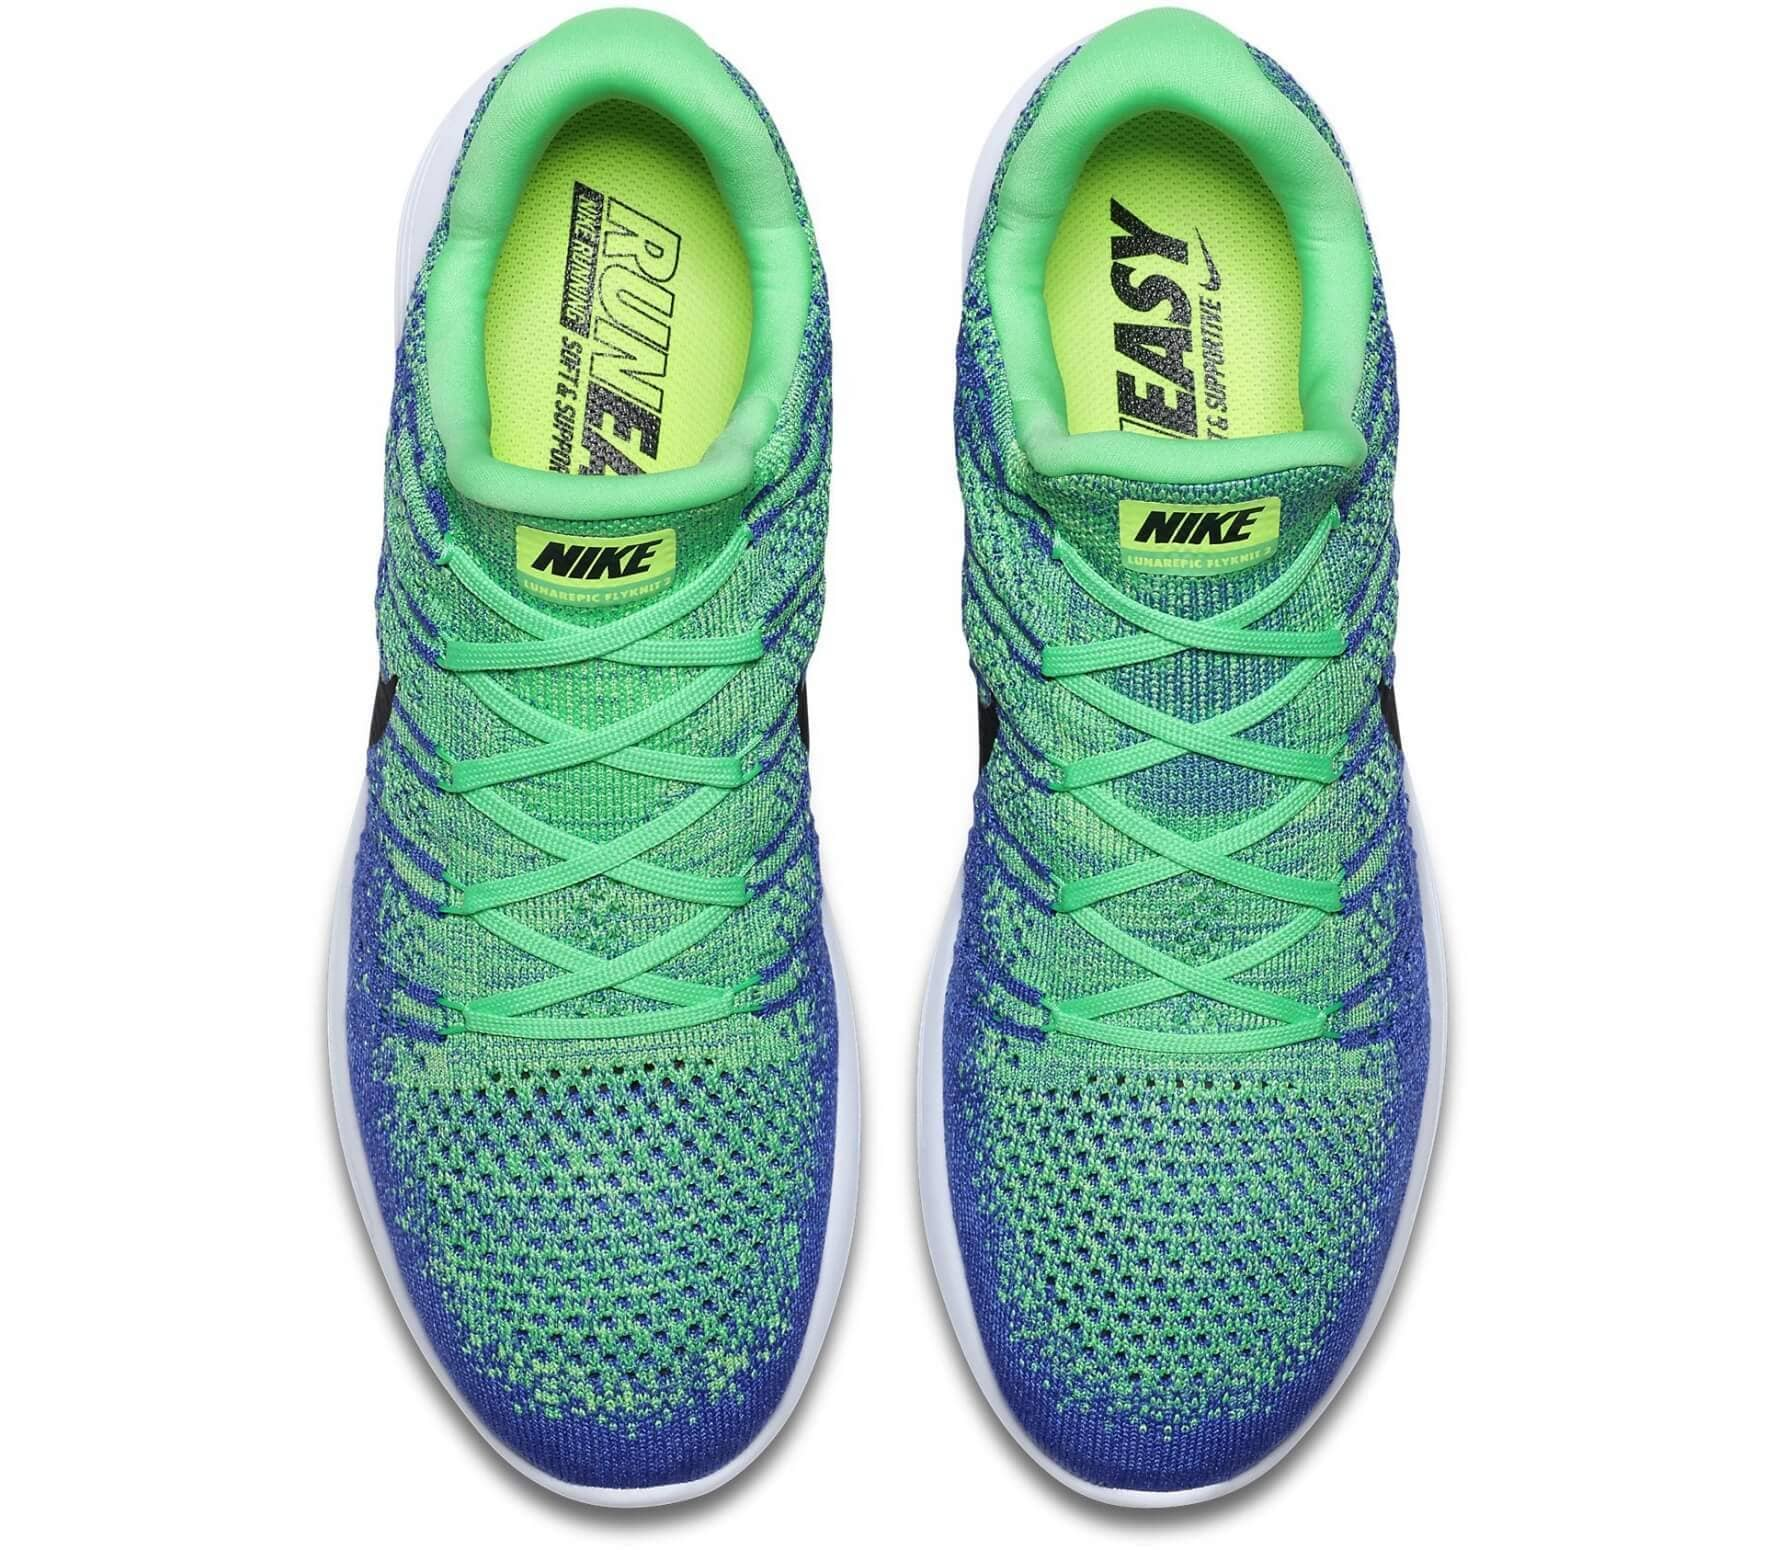 Nike Lunar Epic Low Flyknit 2 Hommes Chaussures De Running Pour Hommes 2 7df6bc